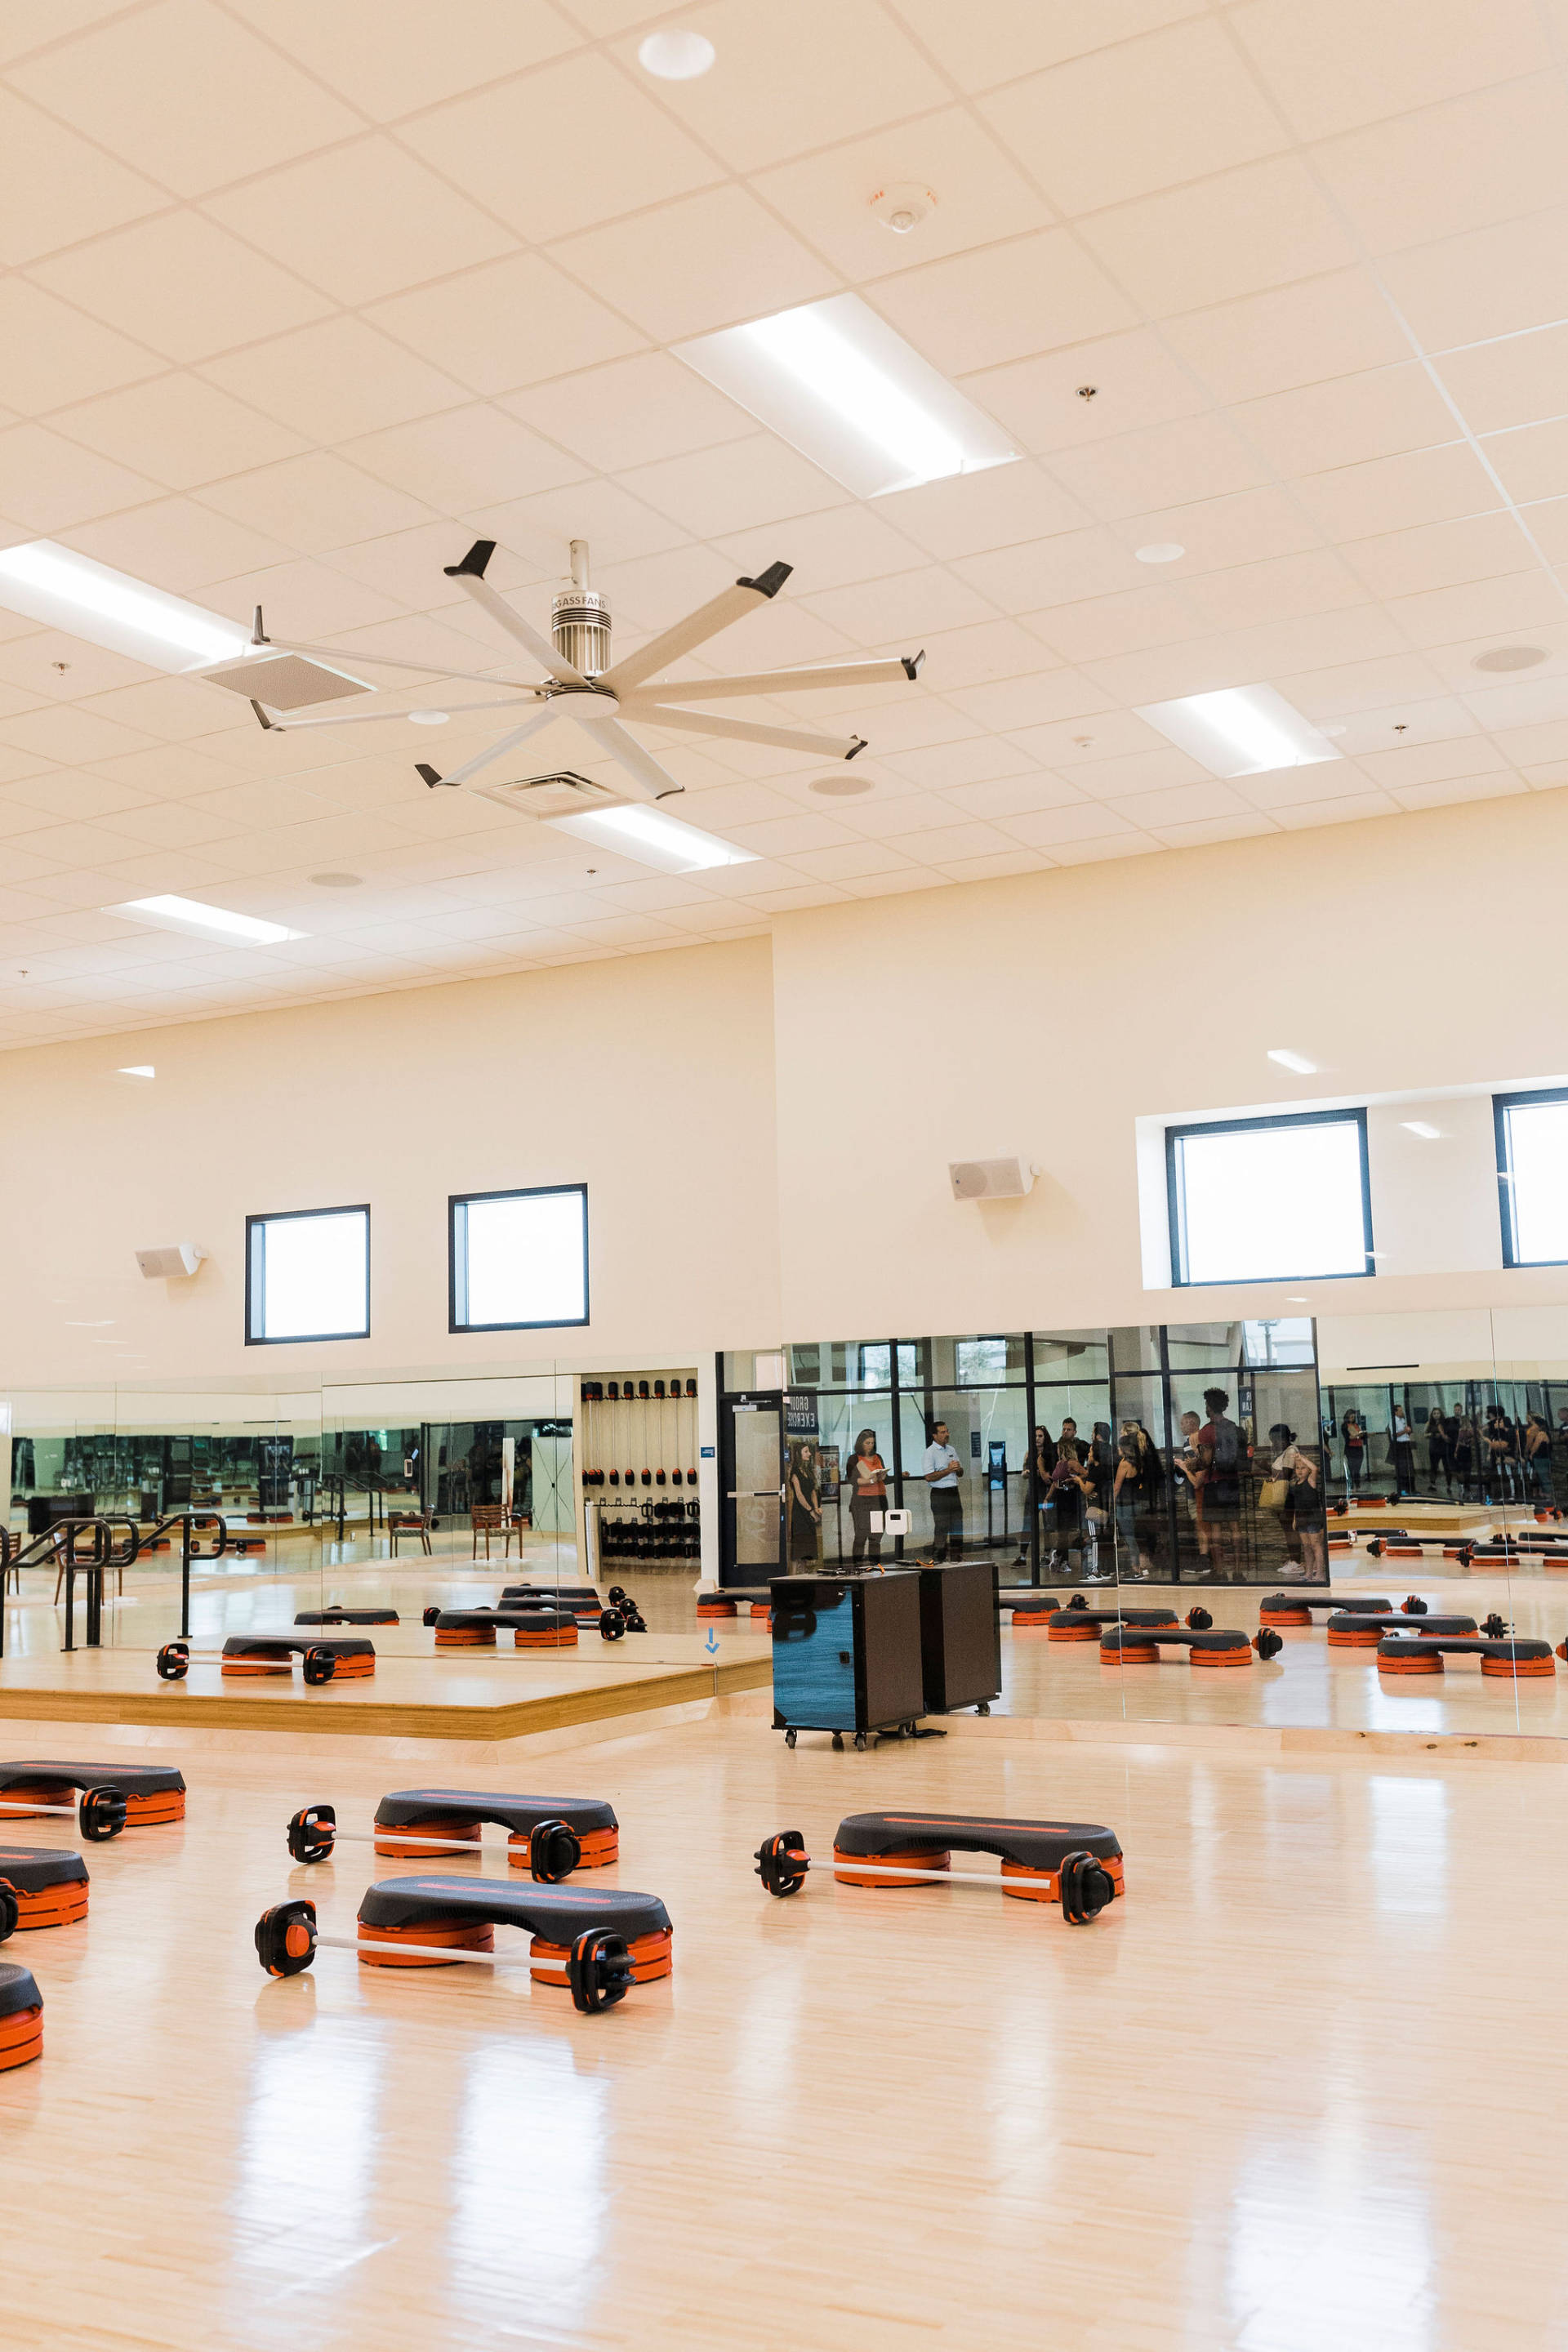 Villa Sport Athletic Club and Spa- Roseville